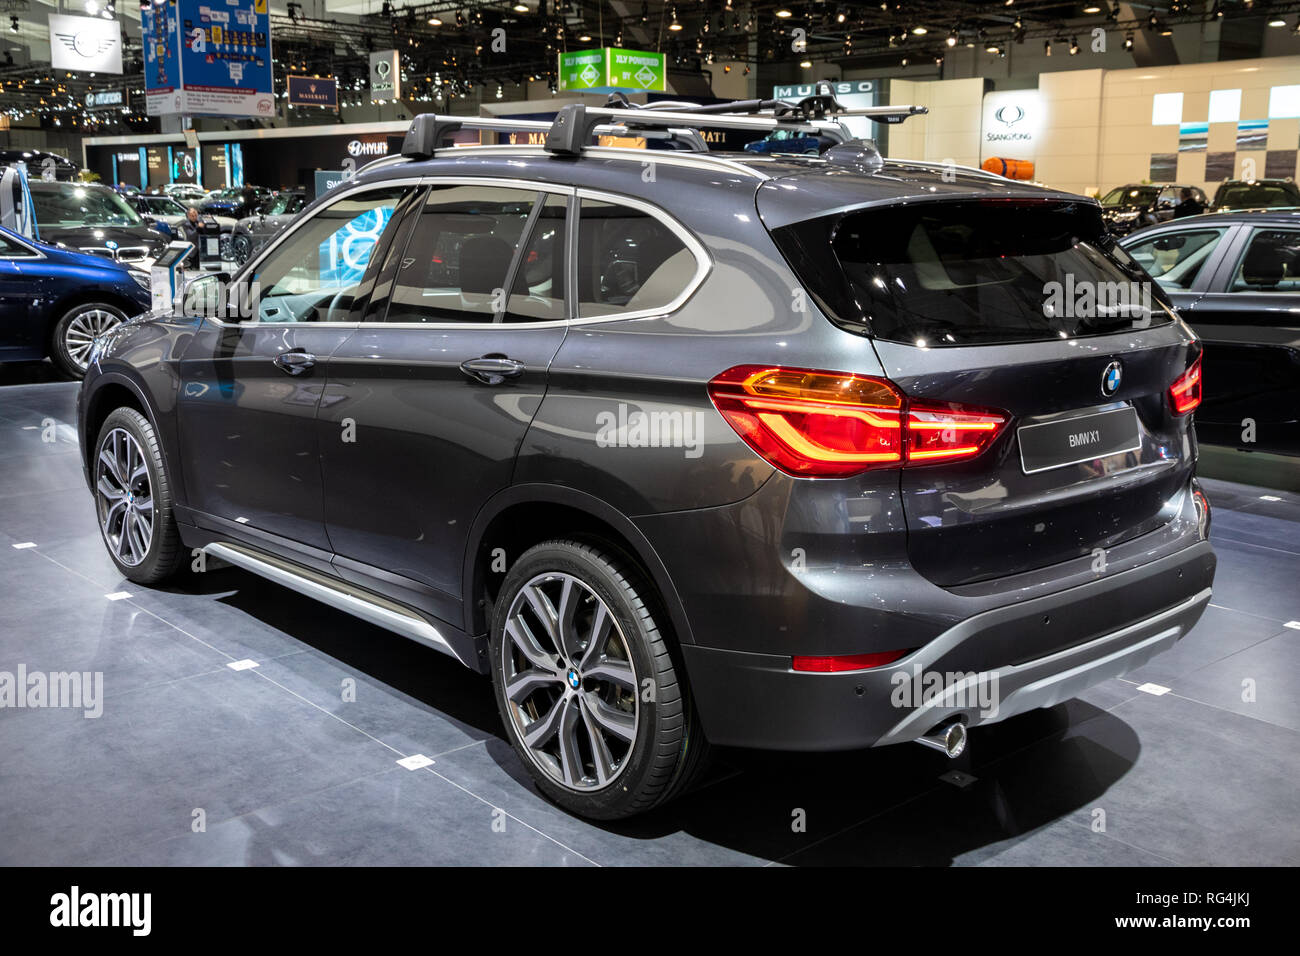 Brussels Jan 18 2019 Bmw X1 Car Showcased At The 97th Brussels